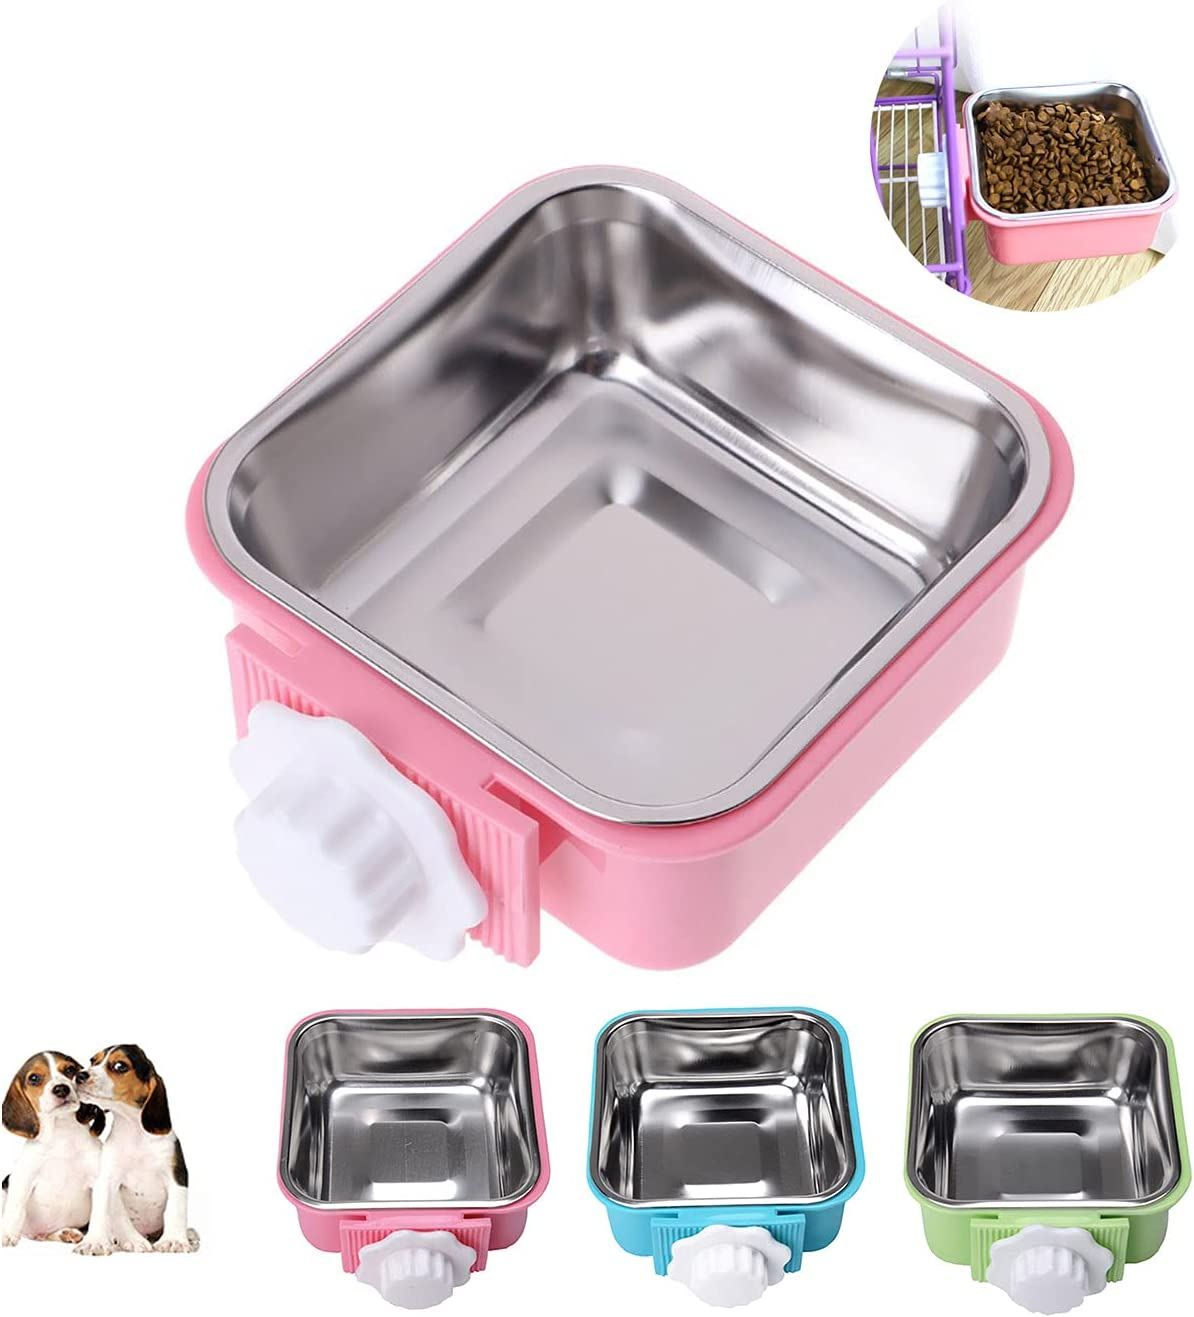 Crate Dog Cat Bowls, Removable Stainless Steel Hanging Pet Cage Bowls Kennel, Food Water Feeder Bowls with Bolt Holder for Puppy Cat Rabbite Birds